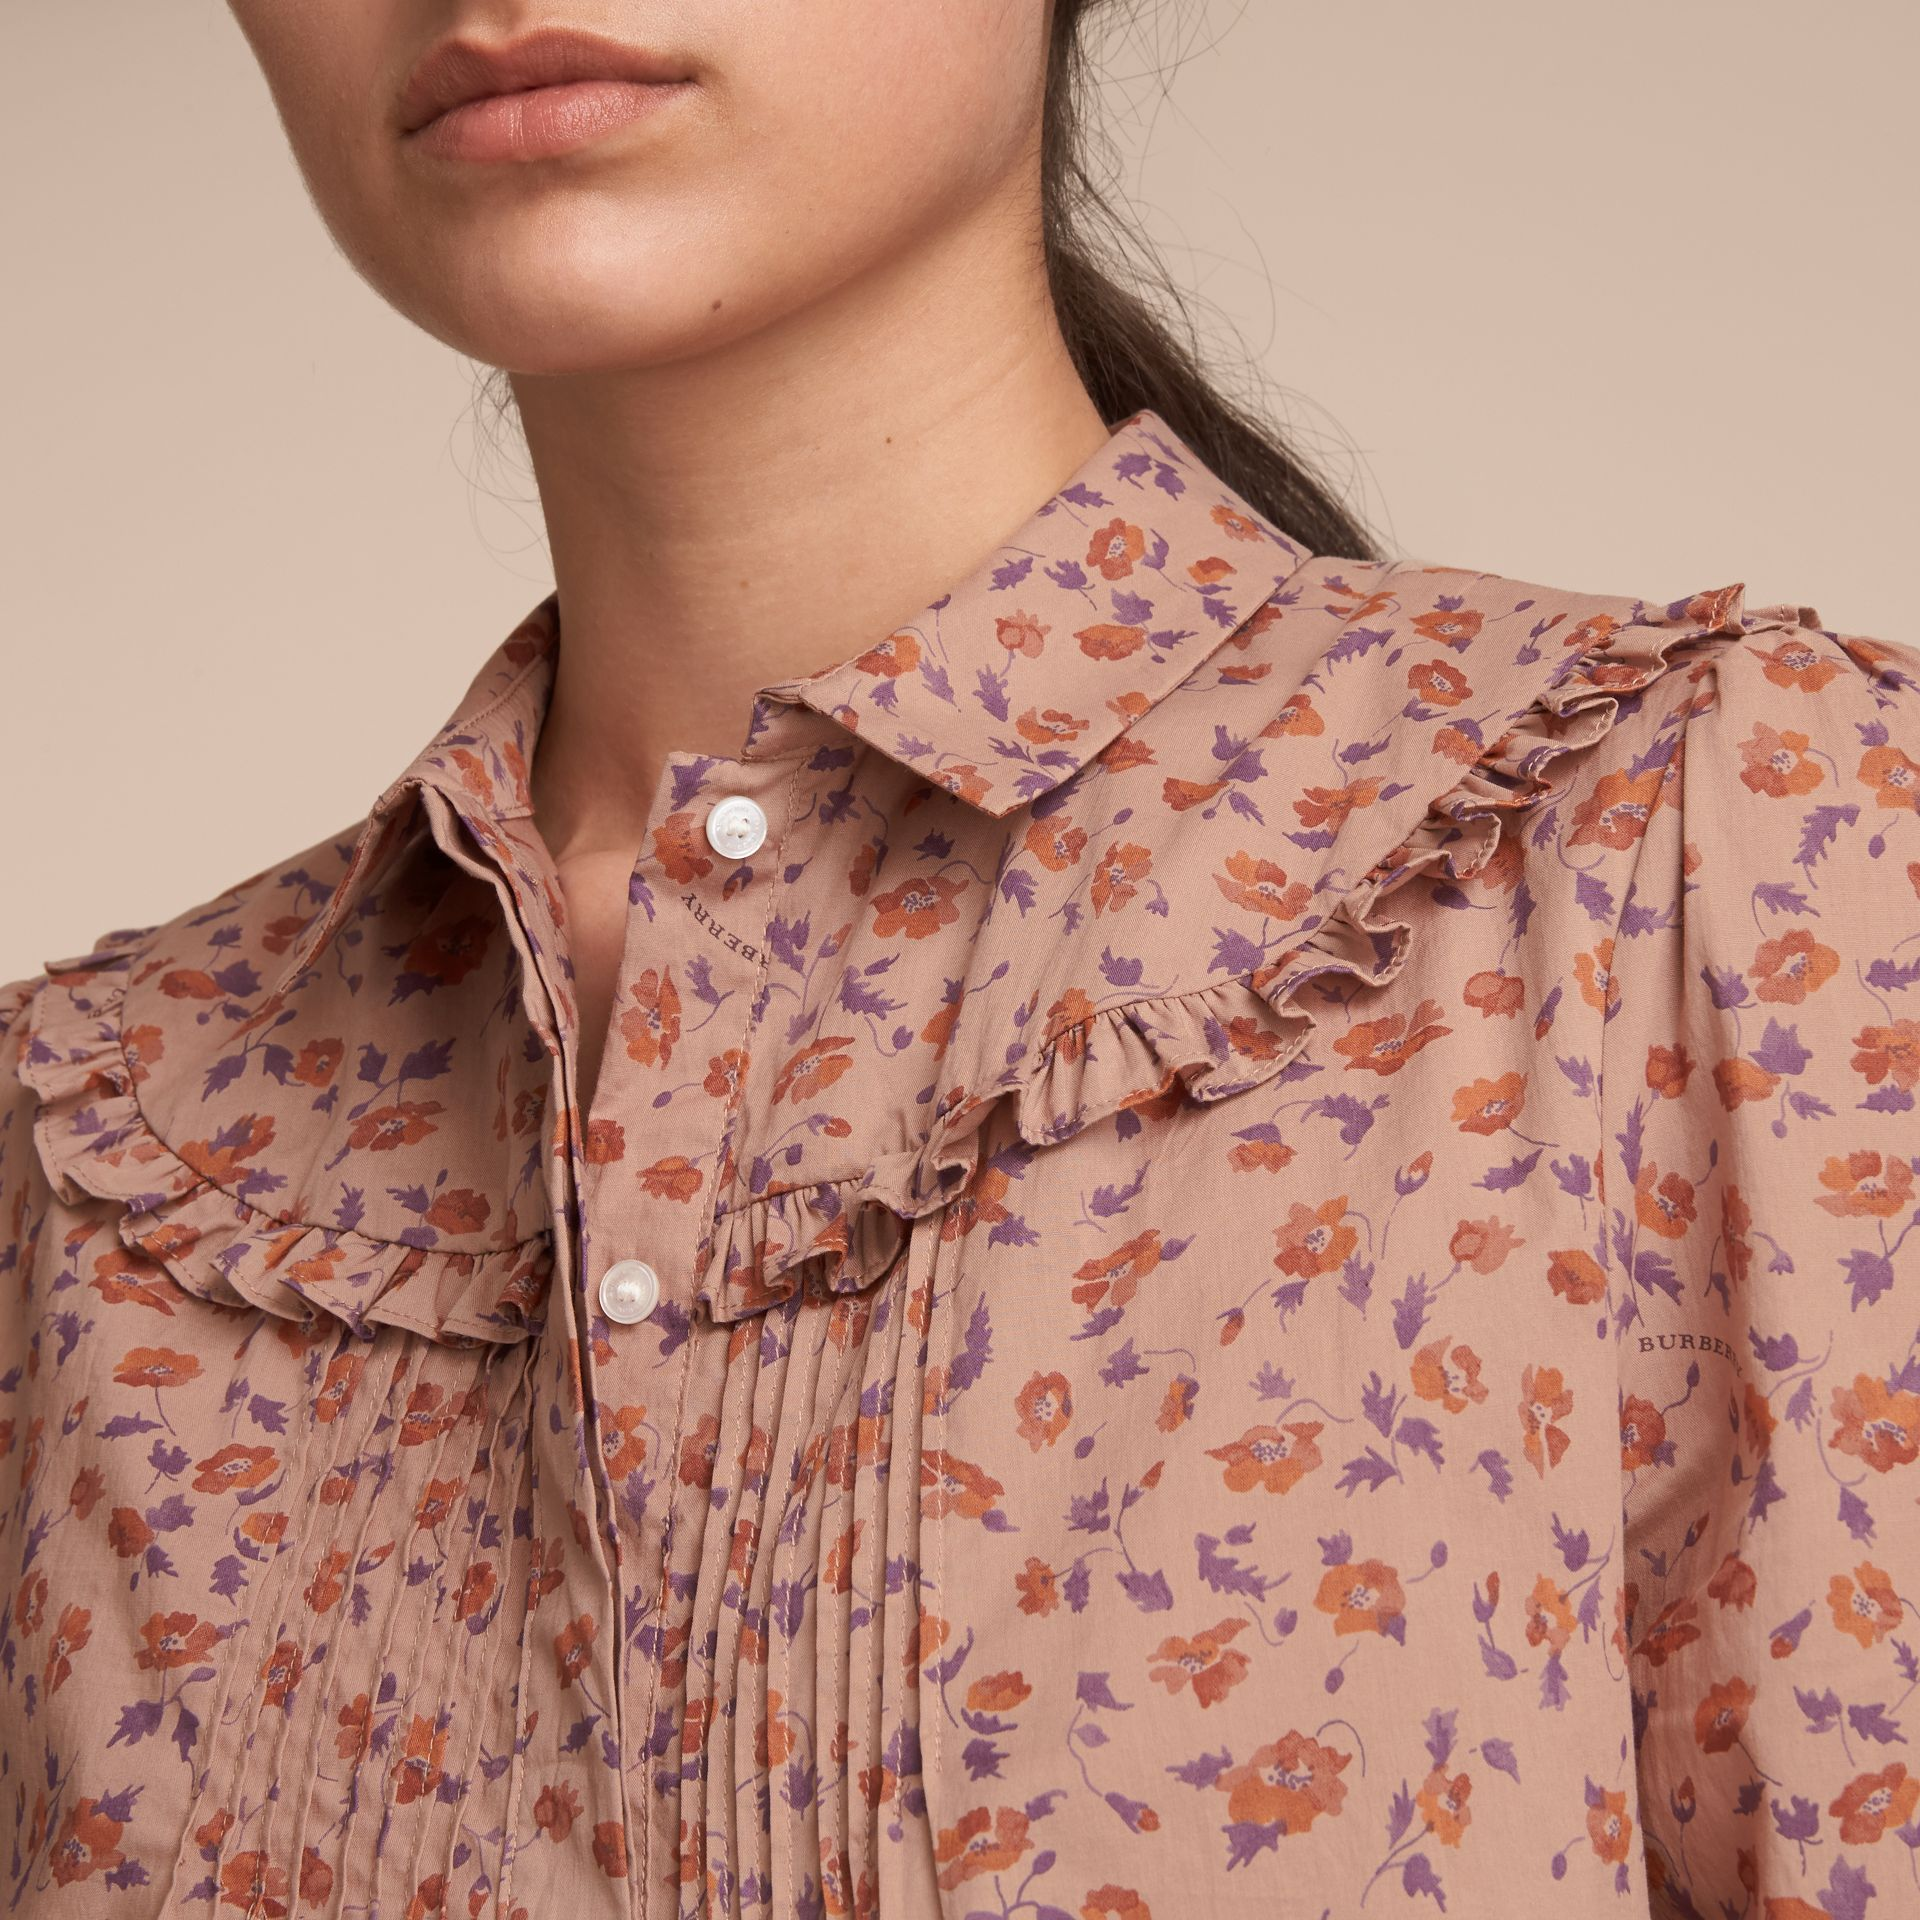 Ruffle Yoke Floral Print Cotton Shirt in Light Copper - Women | Burberry Singapore - gallery image 5